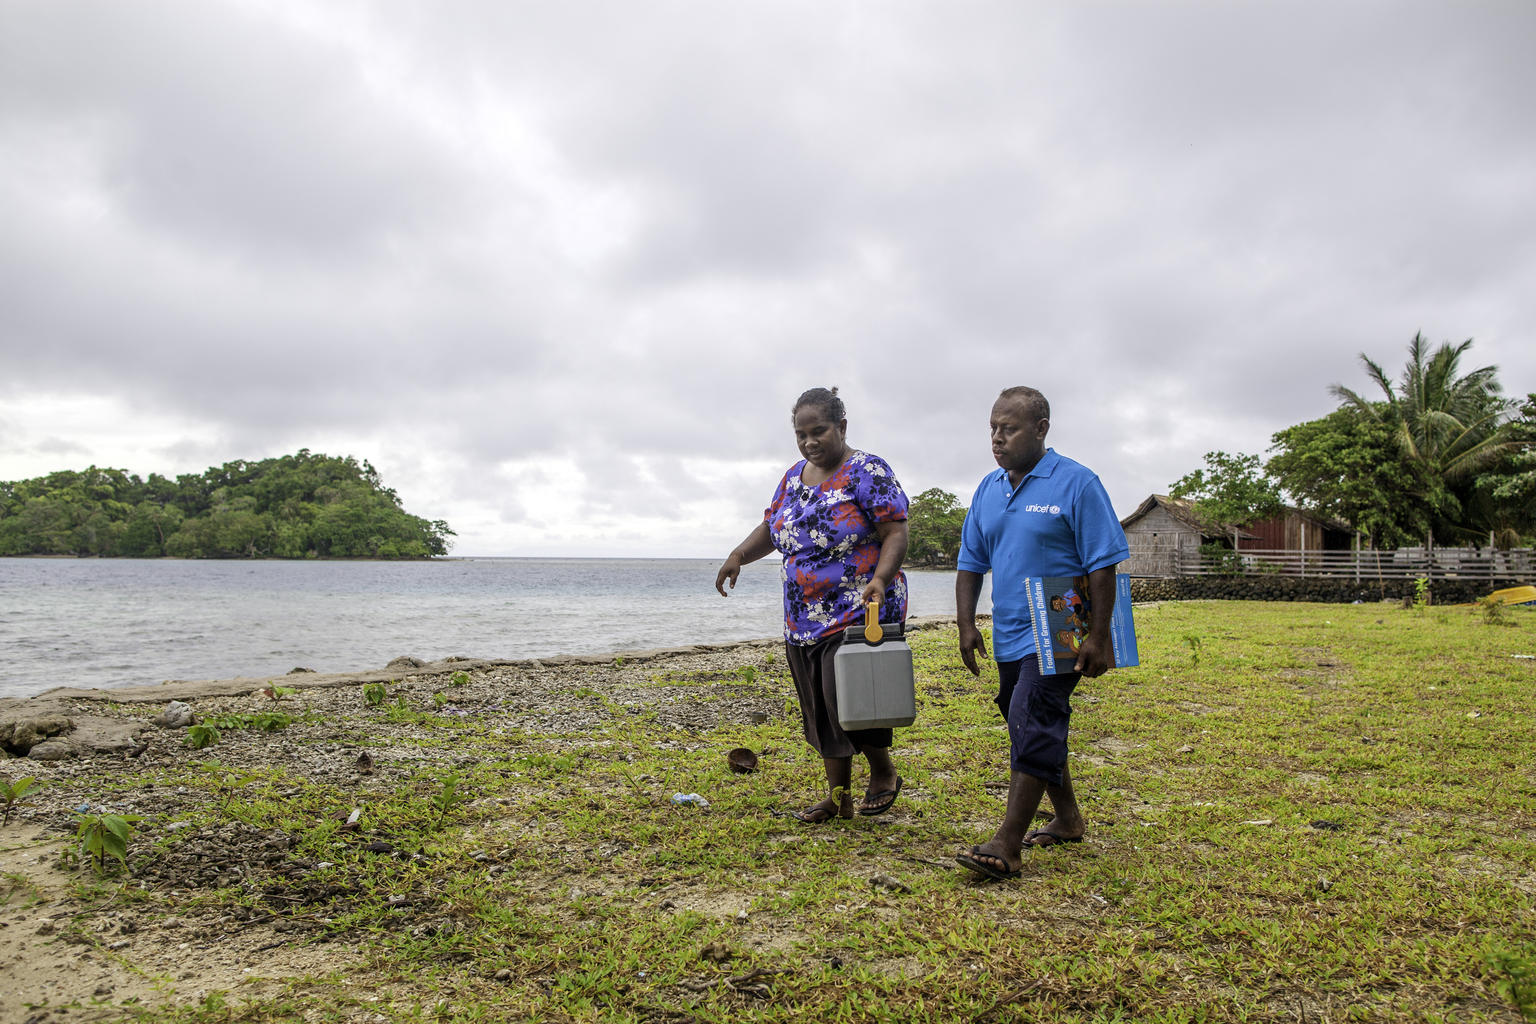 UNICEF Health Worker Paul Maesiala goes the extra mile to reach children in the Solomon Islands